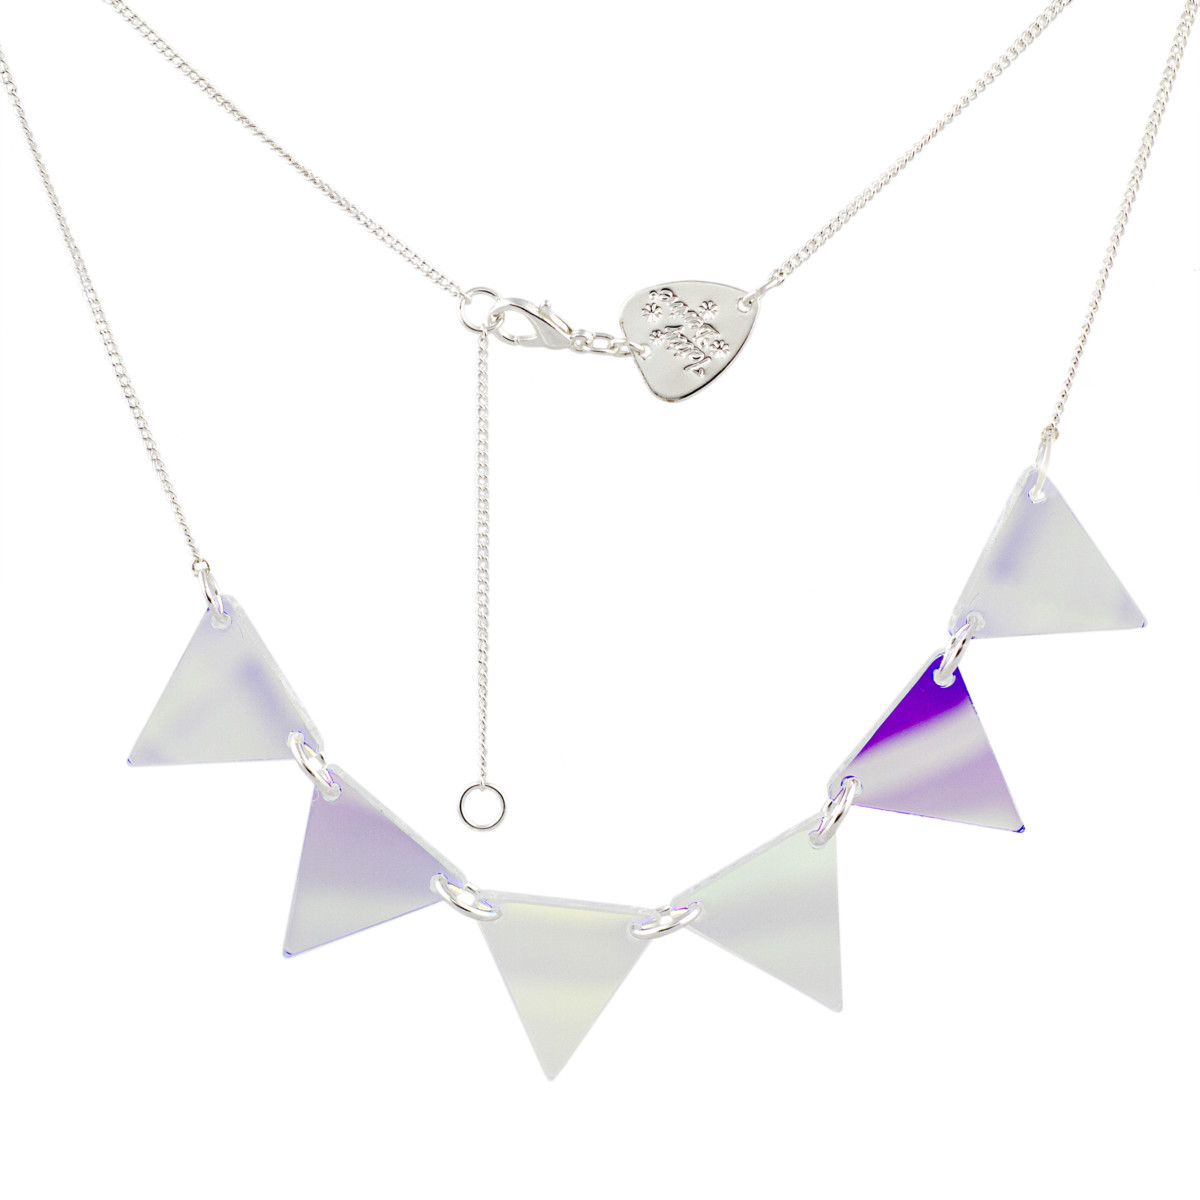 necklace-iridescent-bunting-by-tatty-devine-40-00